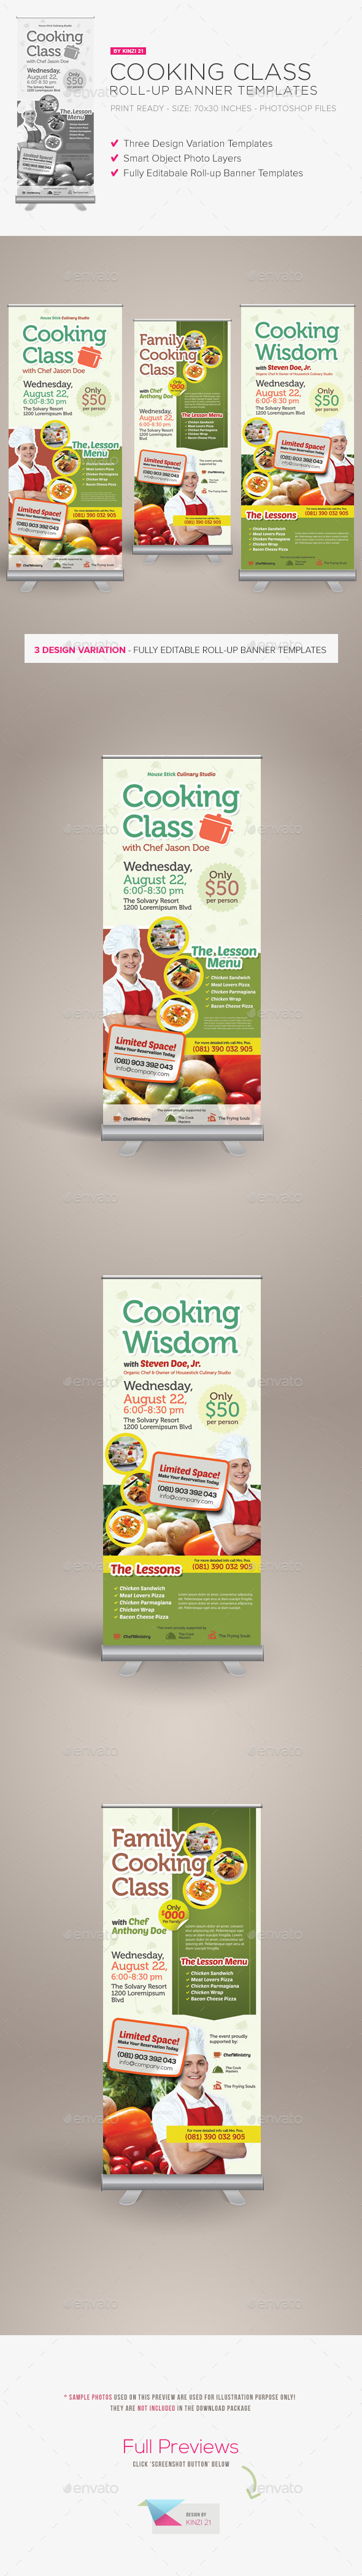 Cooking Class Roll-up Banner Templates - Signage Print Templates